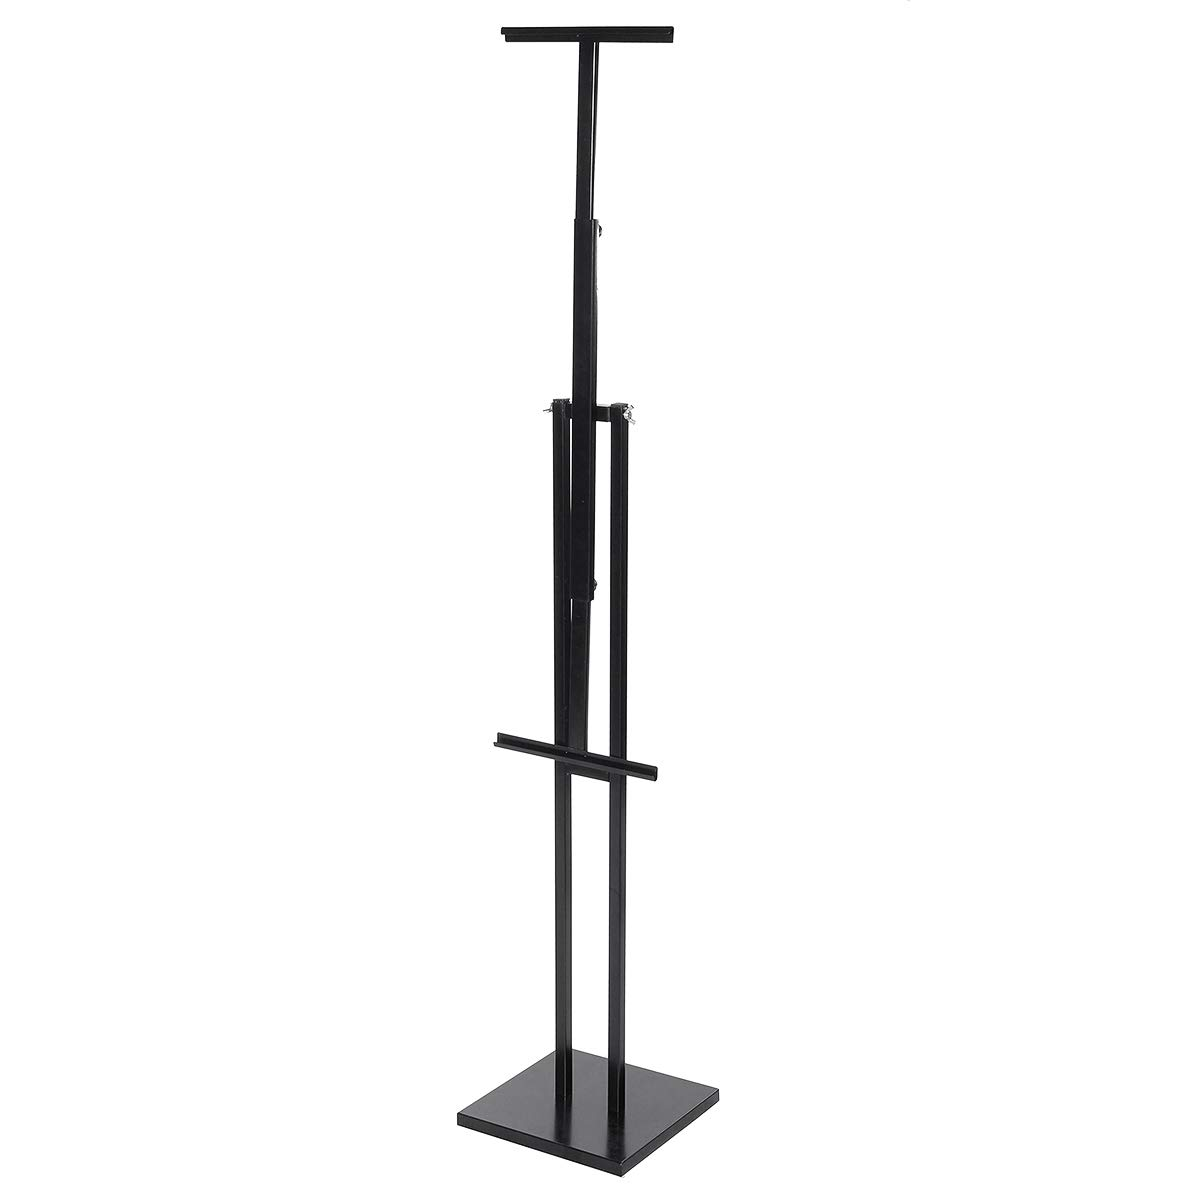 Tutoy Adjustable Two-Sided Kt Board Poster Stand Shelf Rack - Black White